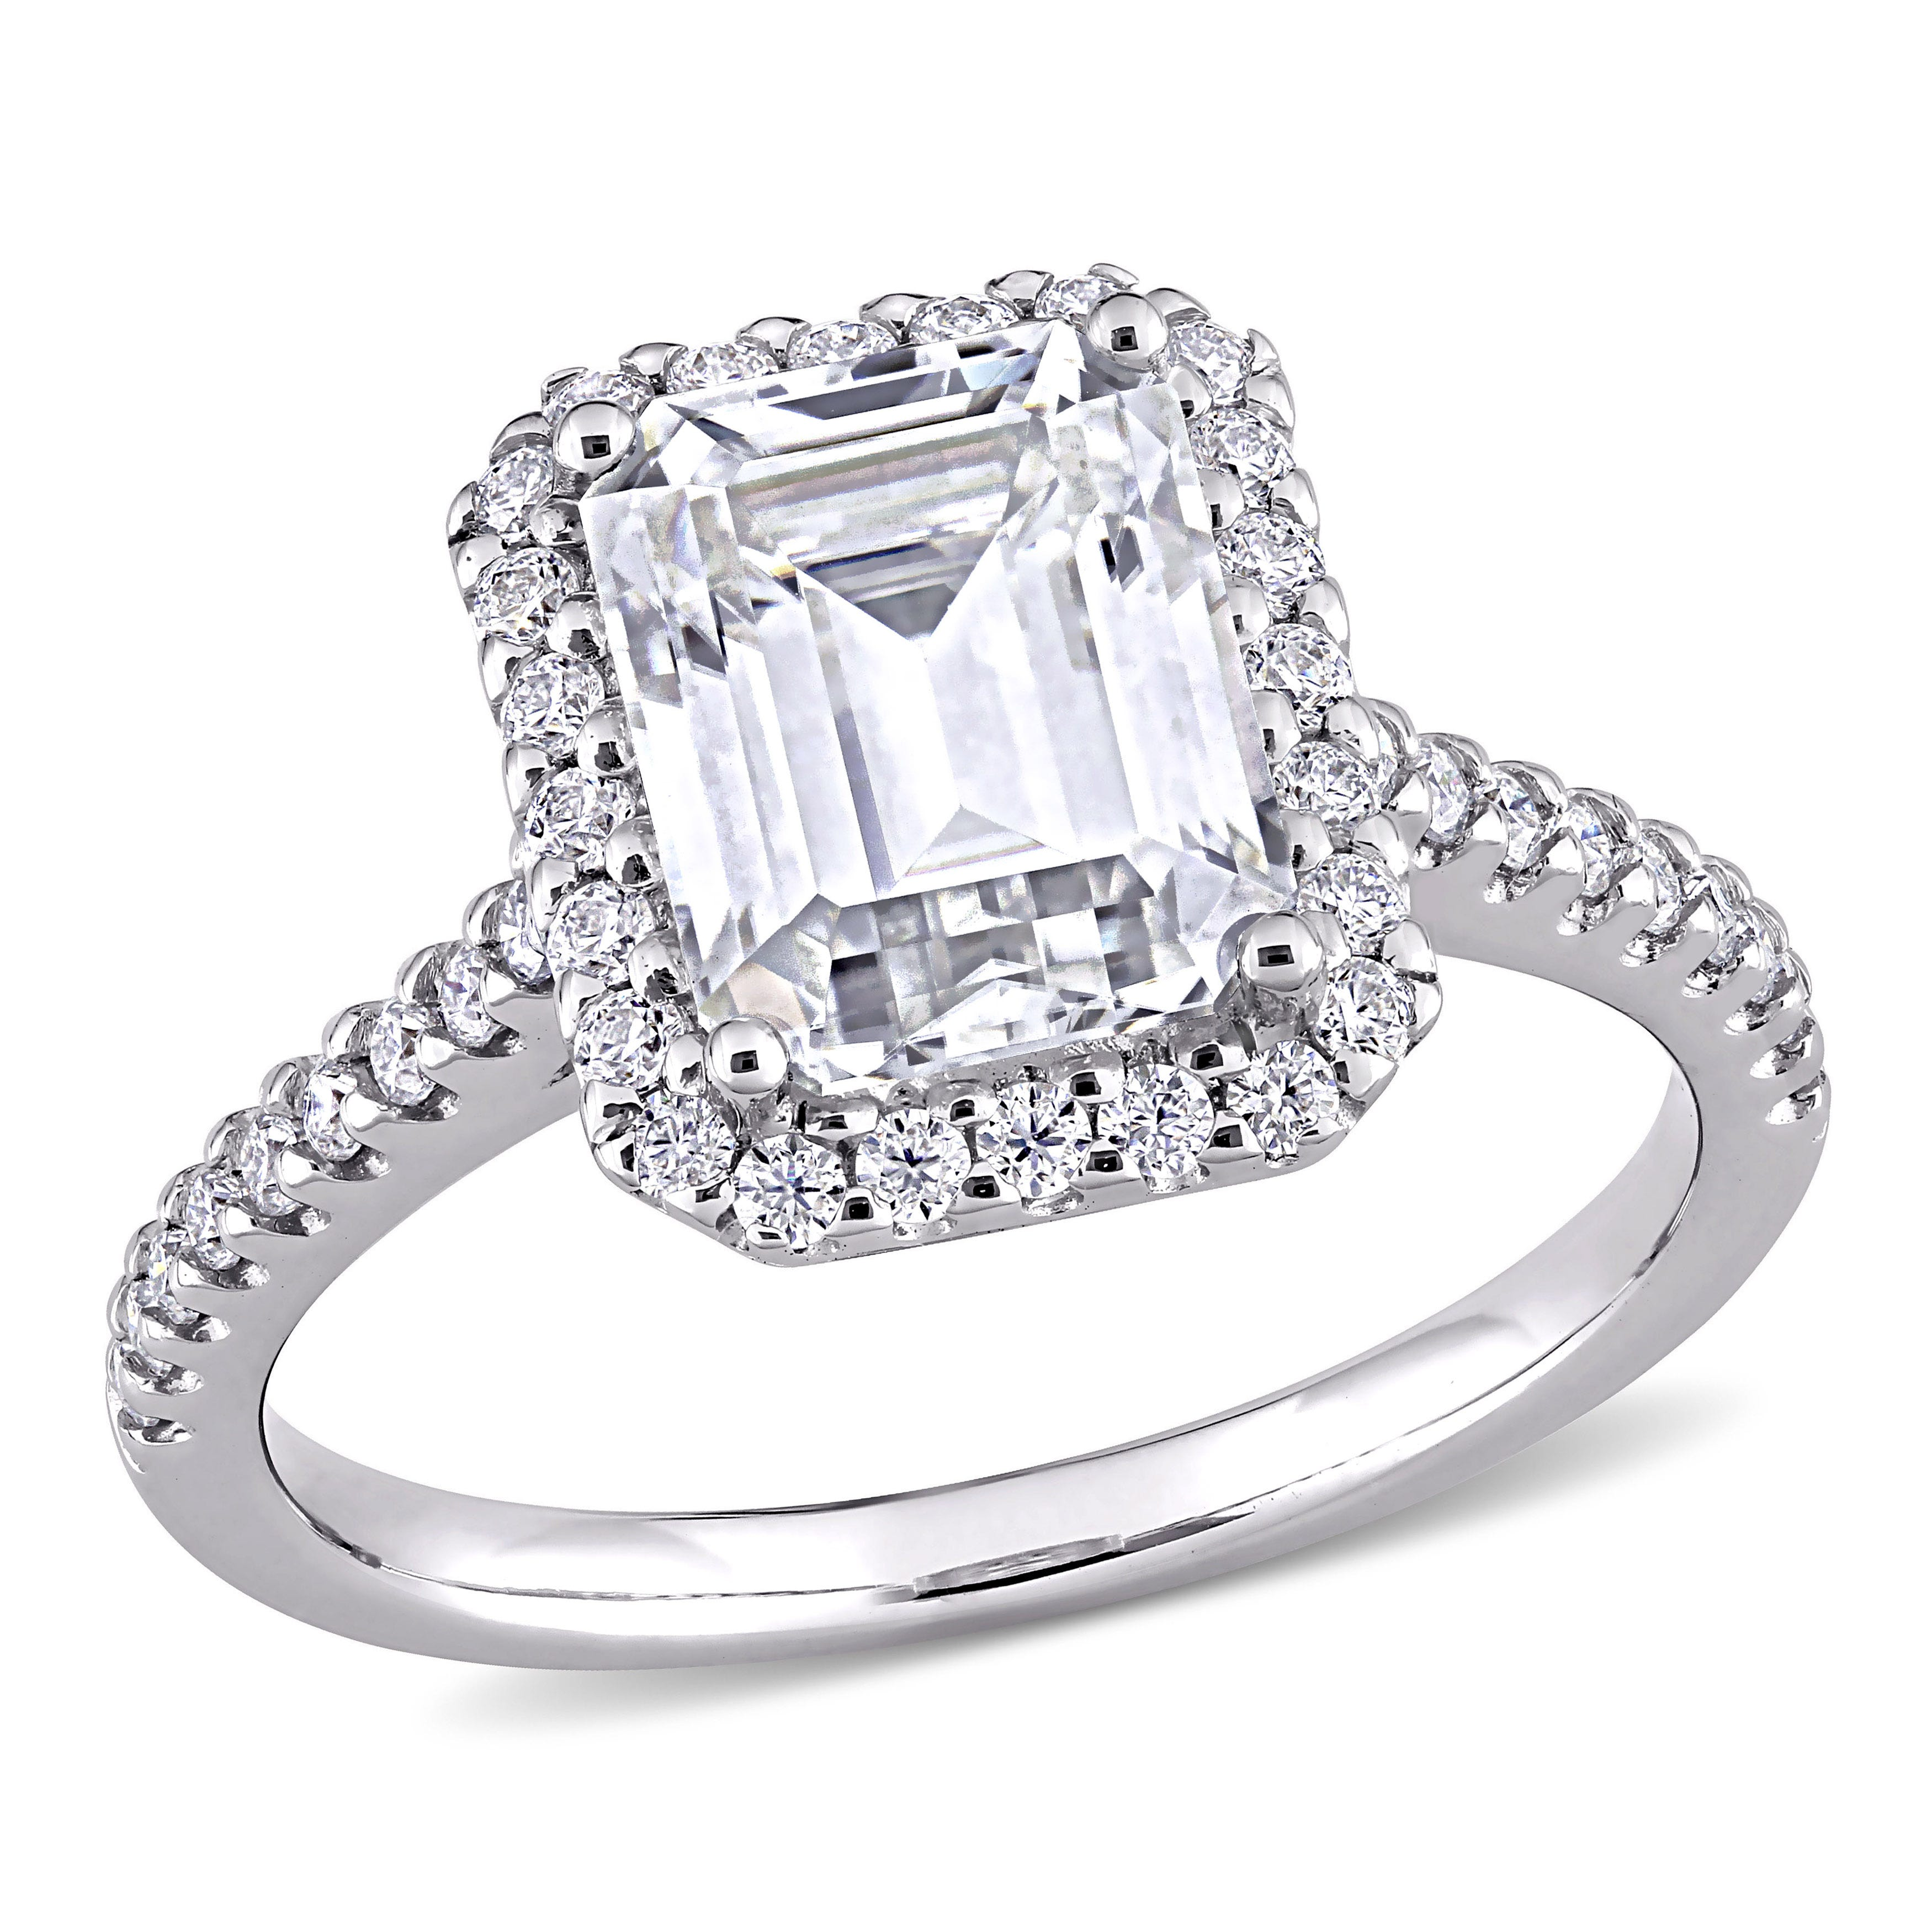 Created Moissanite Halo Engagement Ring in 10k White Gold